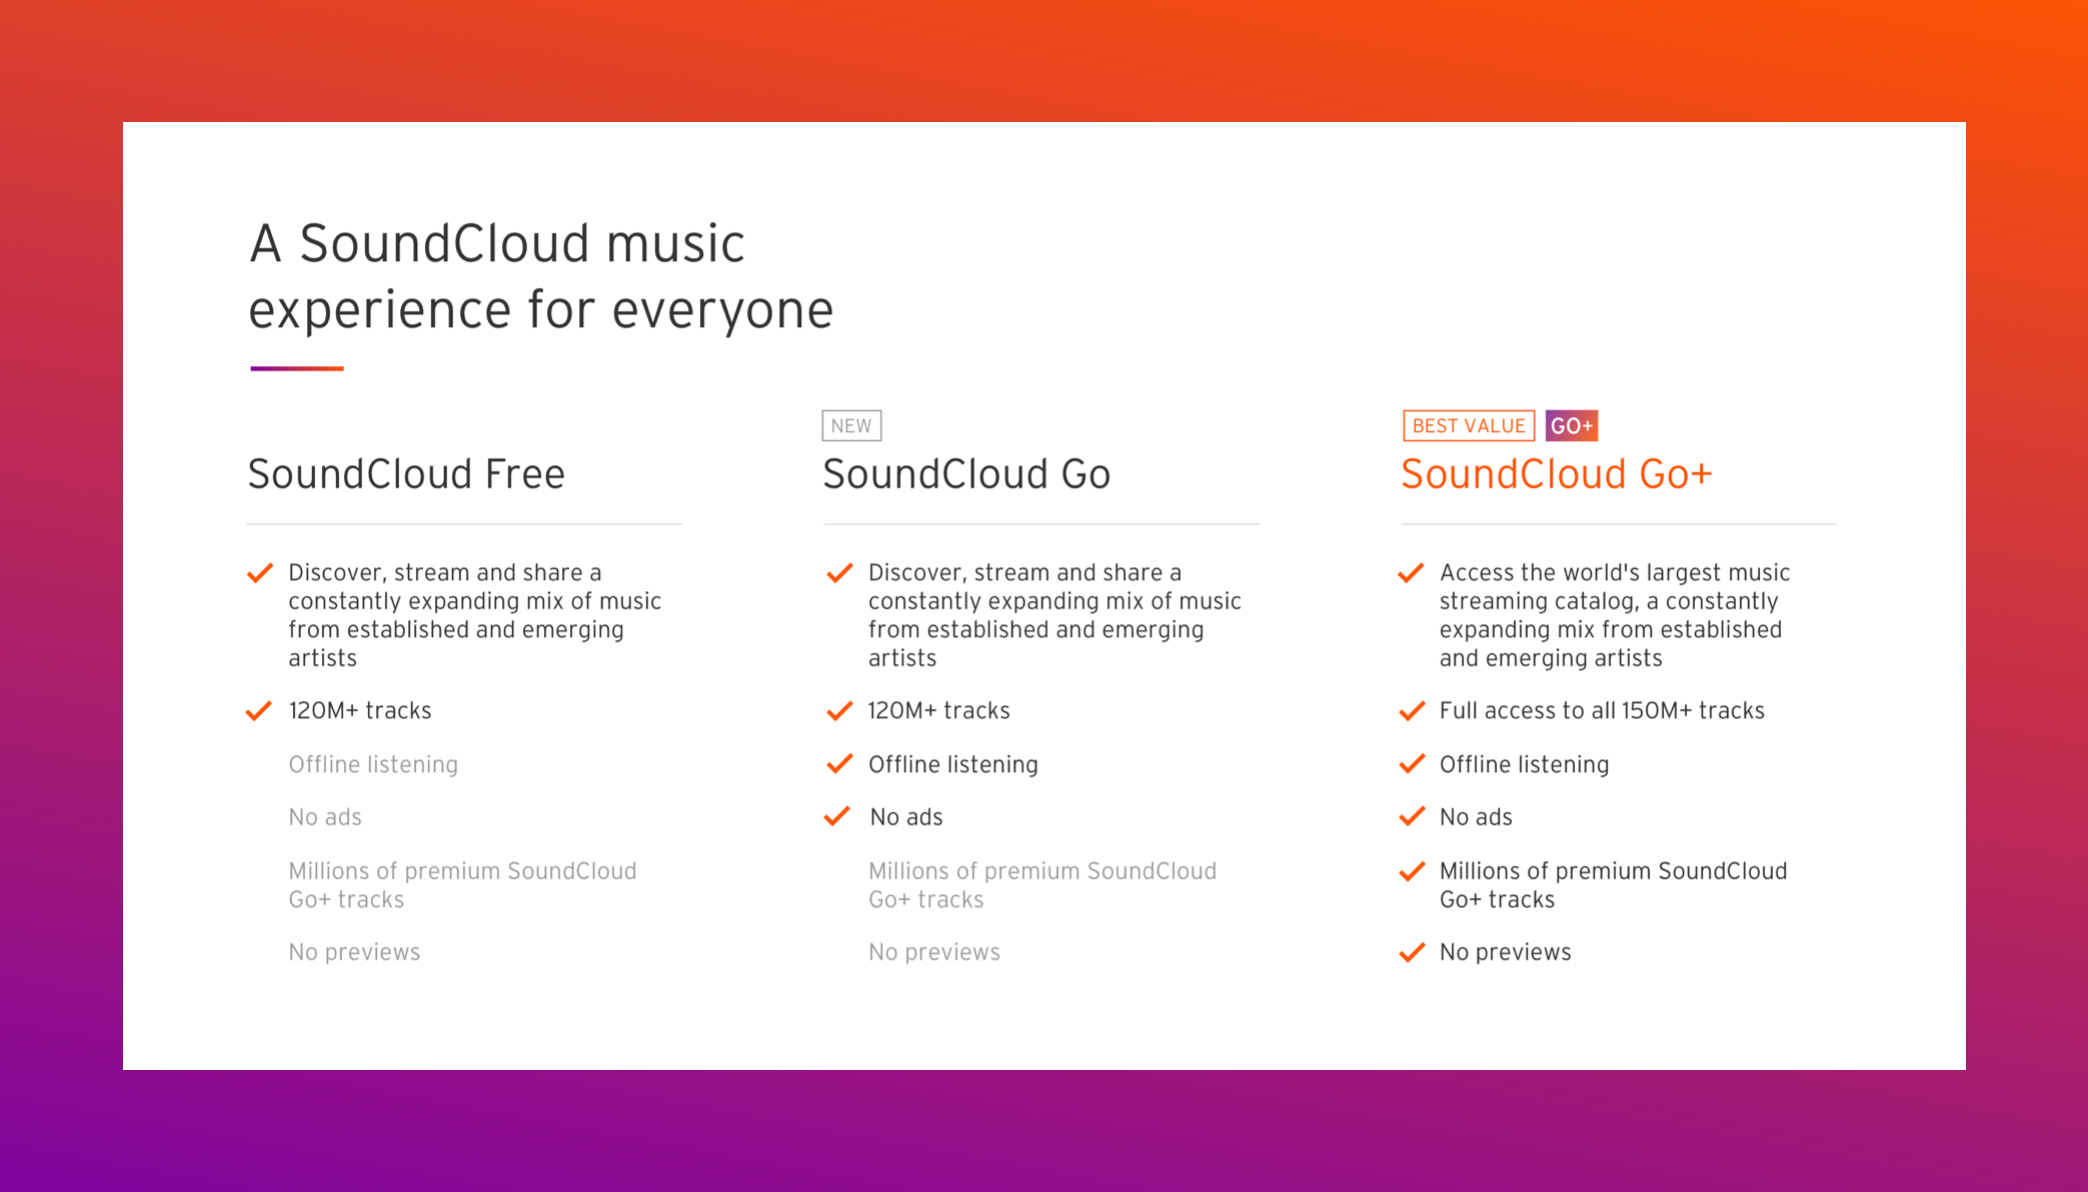 SoundCloud Go just got revamped - but how will it fare?